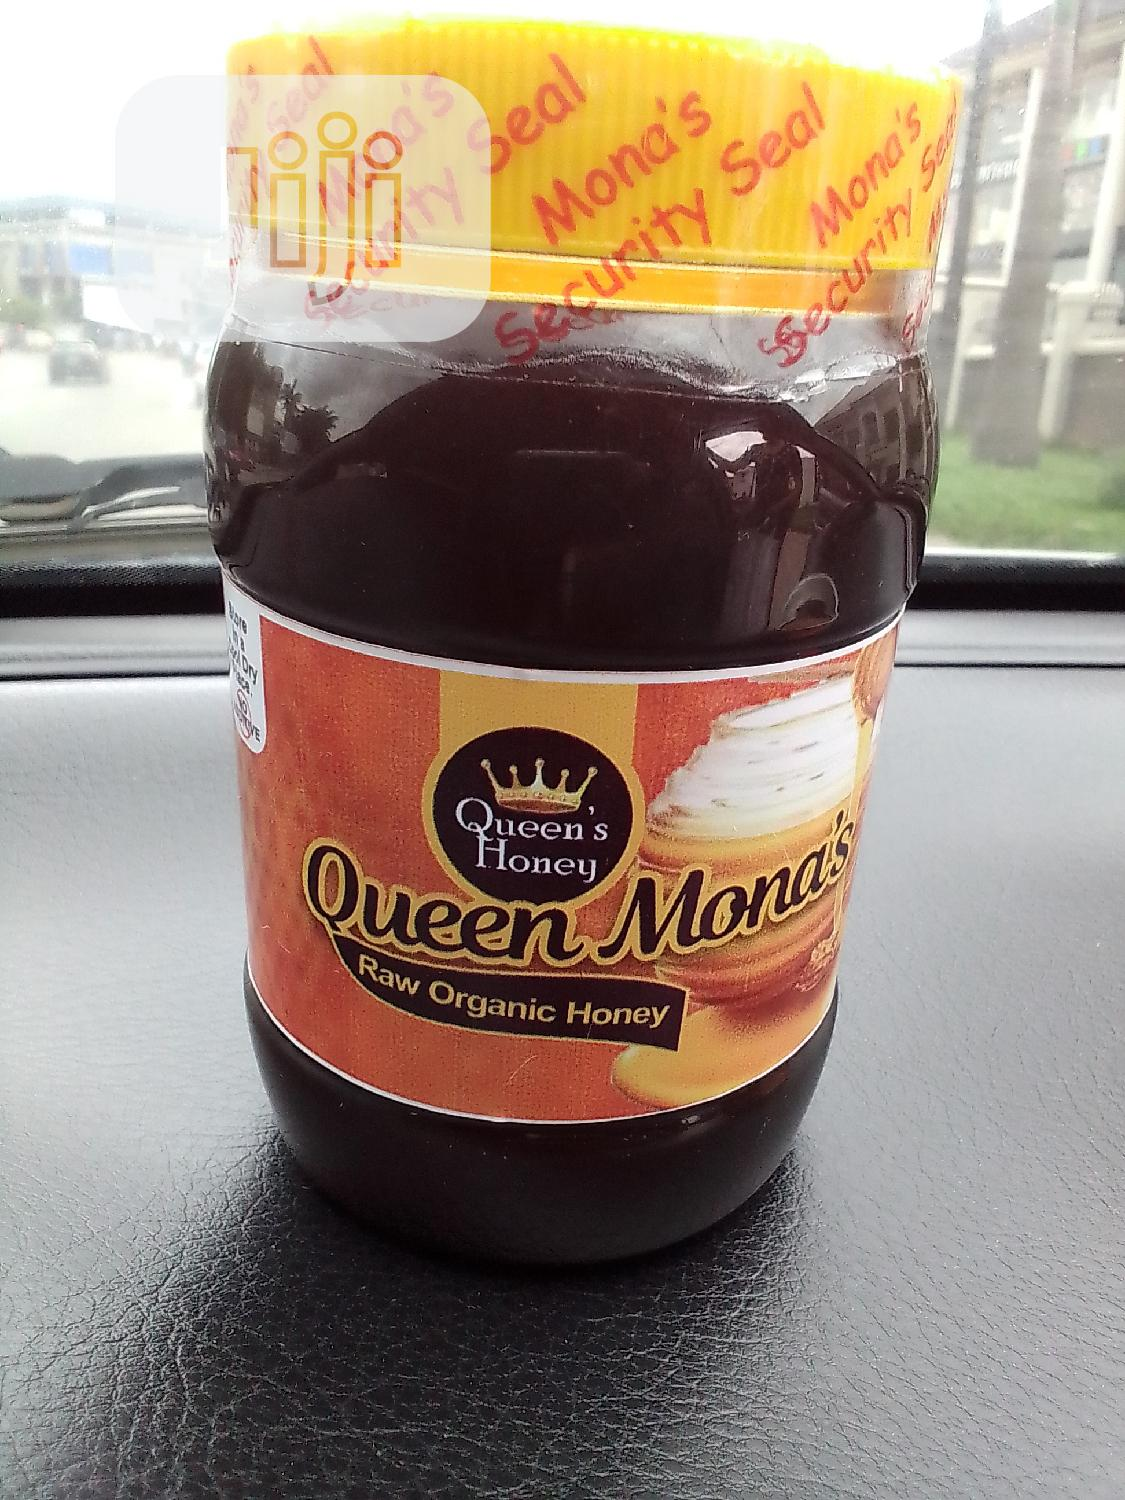 Oueens Honey 75 CL the Best Natural Honey Available